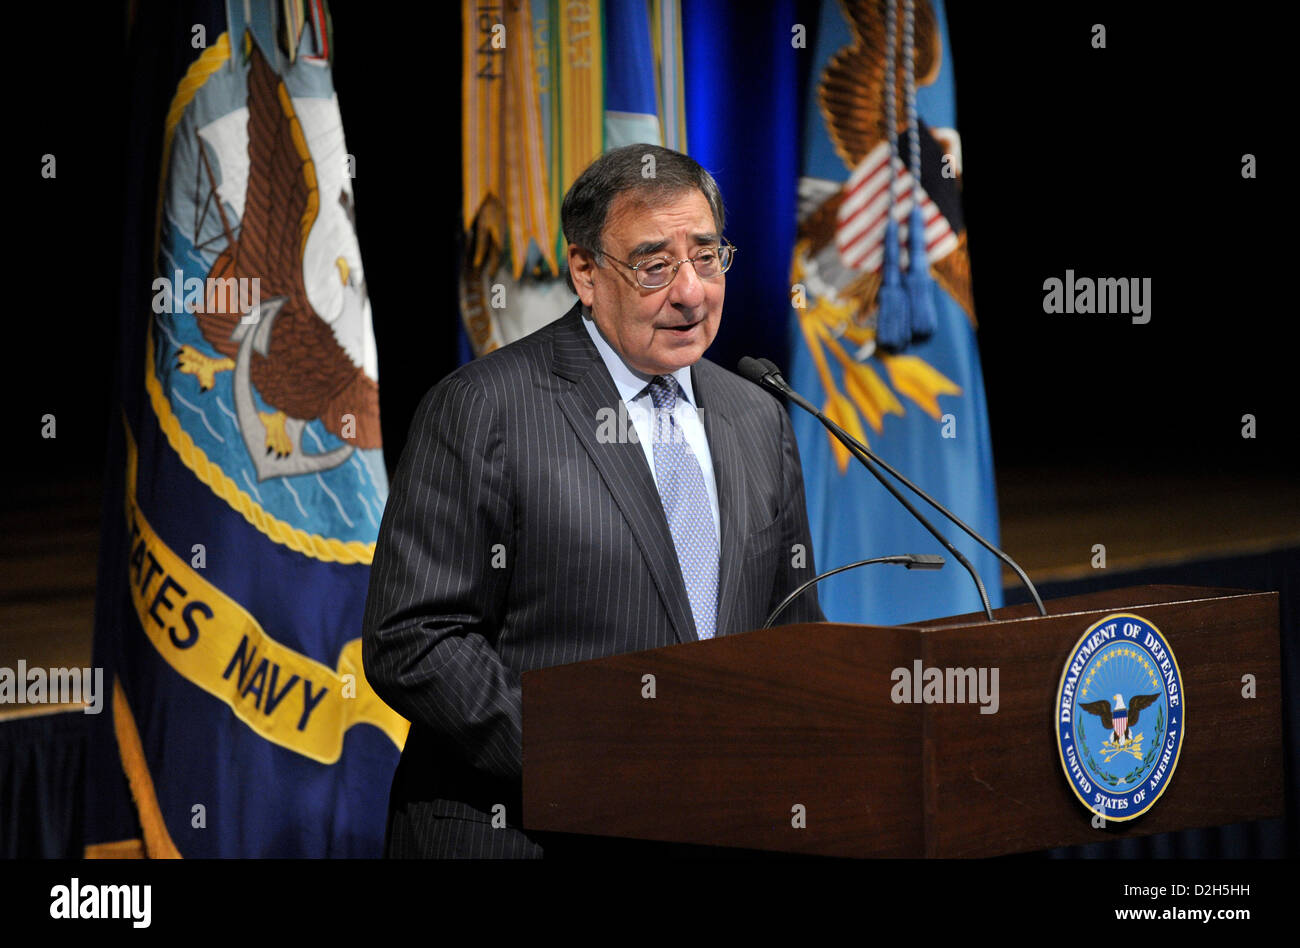 Arlington, Virginia, USA. 24th January 2013. US Secretary of Defense Leon Panetta delivers remarks during the 28th annual observance of Martin Luther King Jr. in the Pentagon Auditorium January 24, 2013 in Arlington, VA. Panetta is expected to officially lift the restrictions on women in combat later in the day. Credit:  Planetpix / Alamy Live News Stock Photo